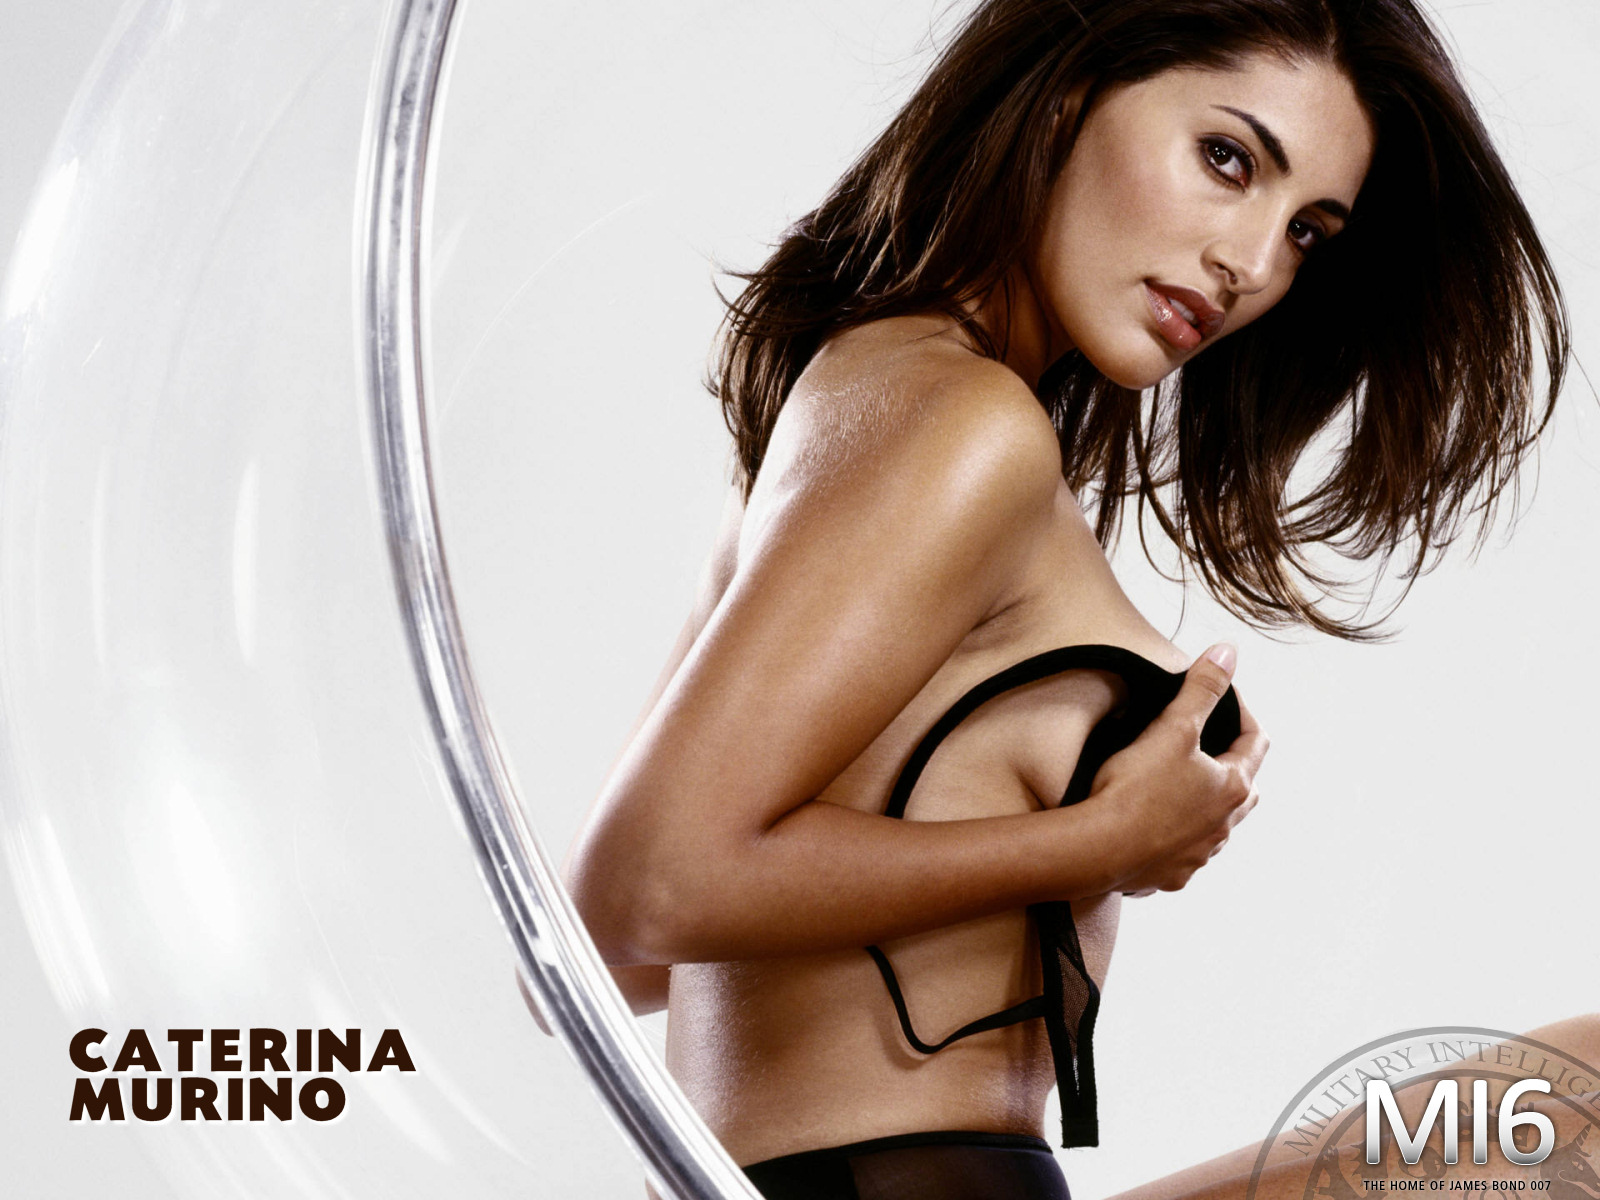 Caterina Murino Maxim caterina murino casino royale top hd images for ...